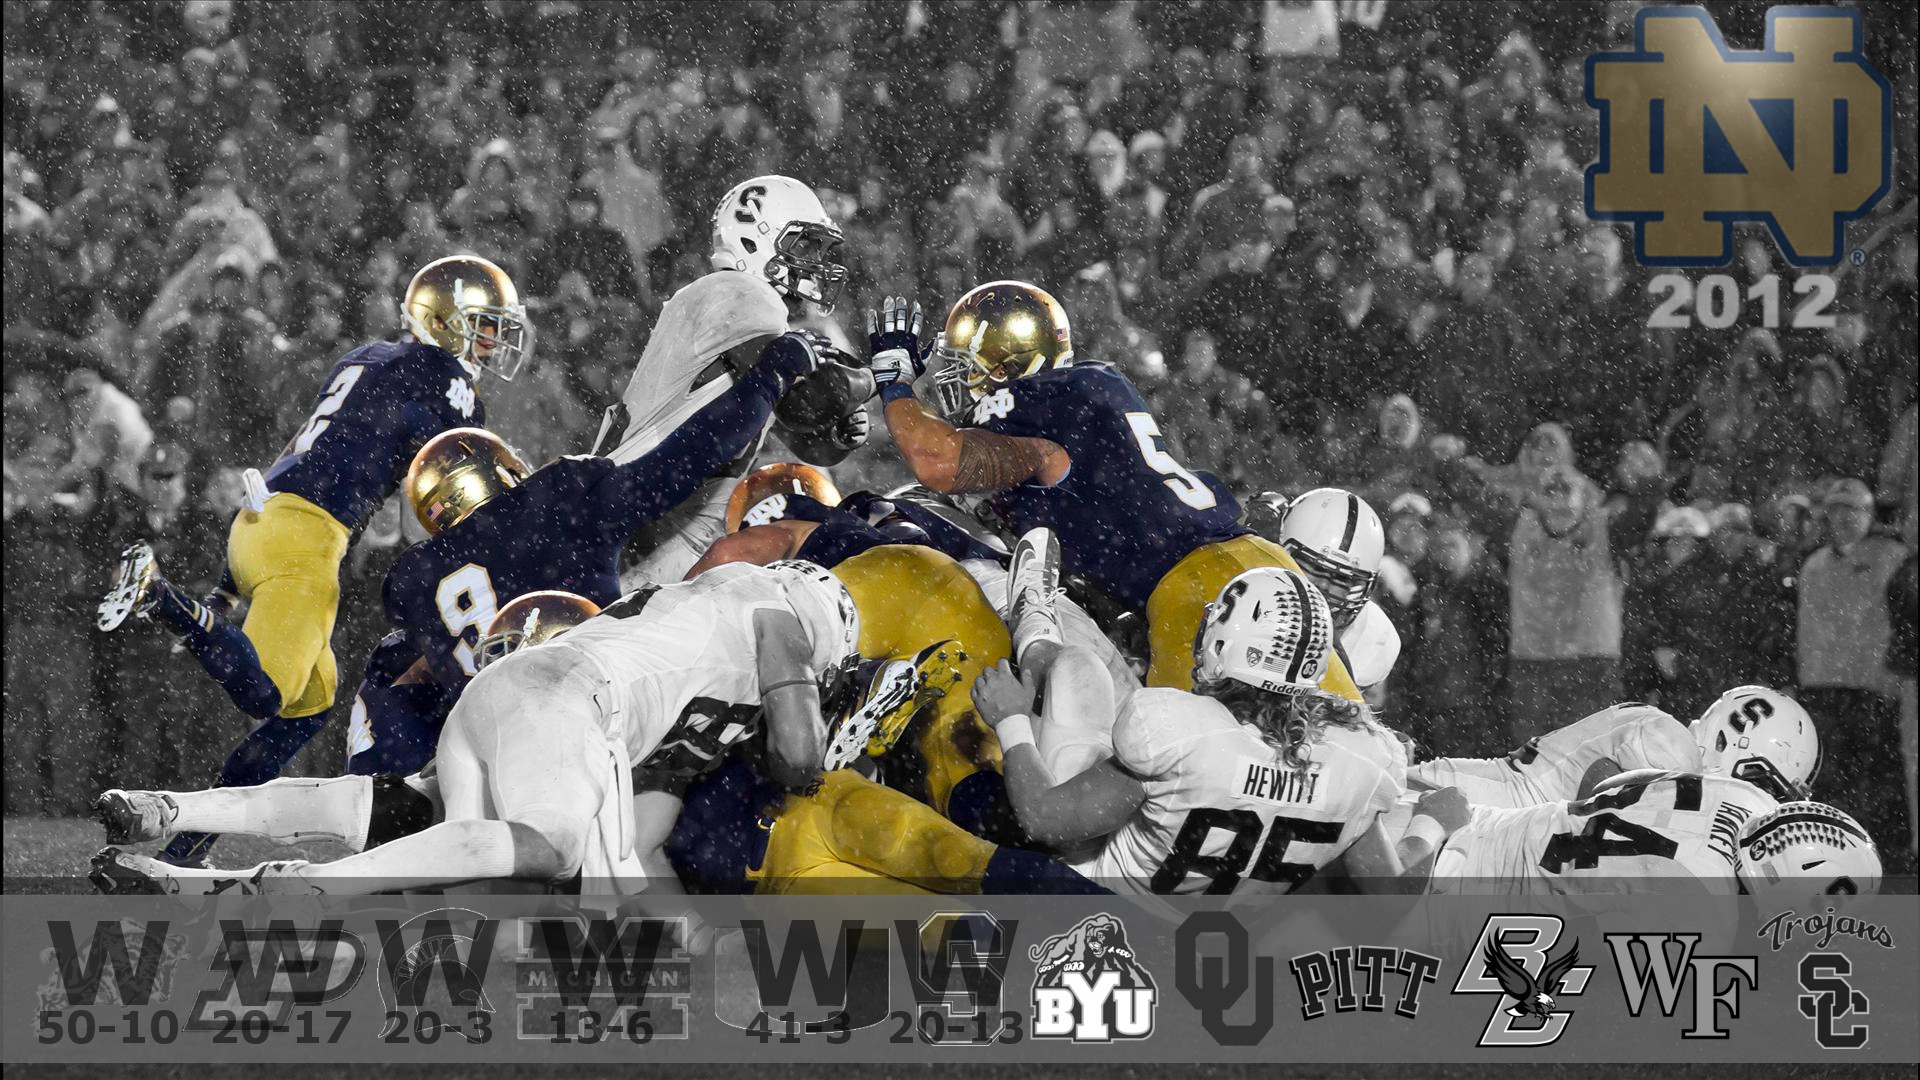 Notre dame football pictures gallery Bleacher Report Sports. Highlights. News. Now